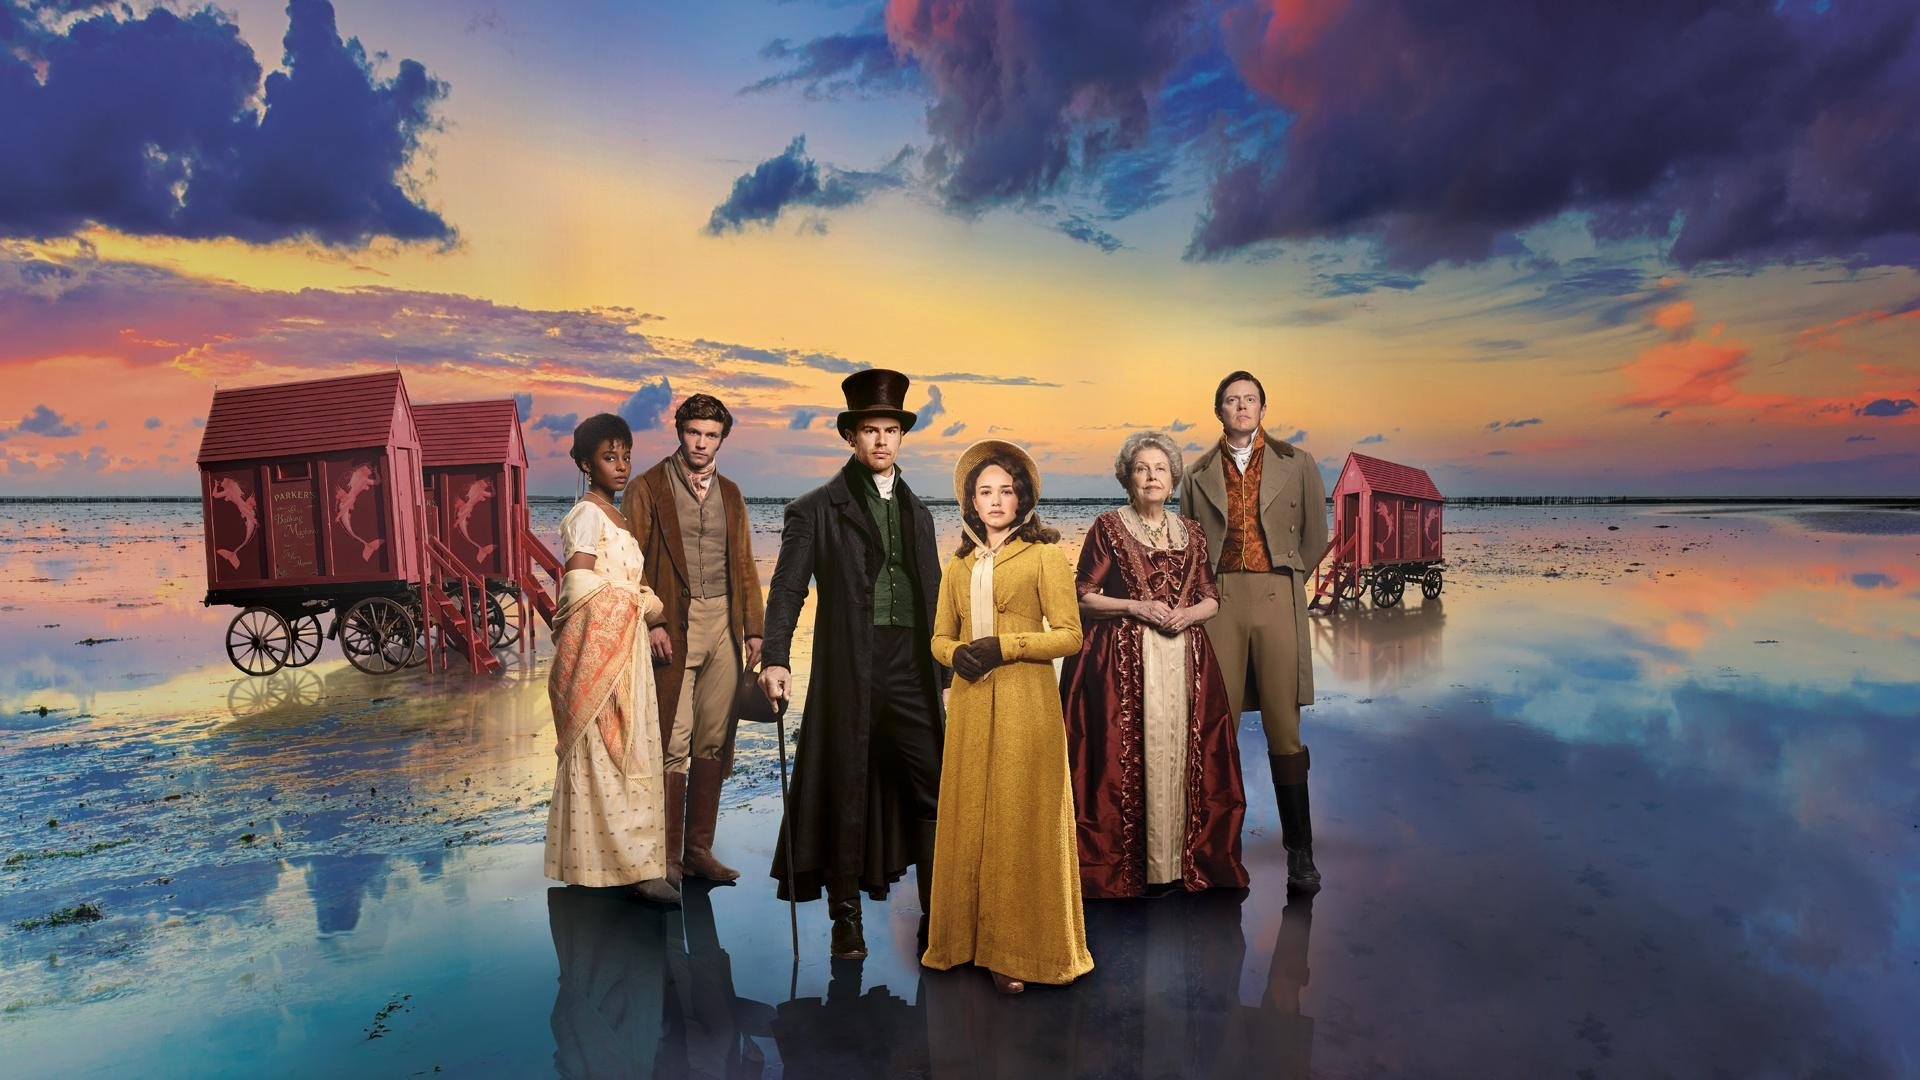 Sanditon, the new 8-part series from MASTERPIECE begins on Sunday, January 12 on PBS 6.